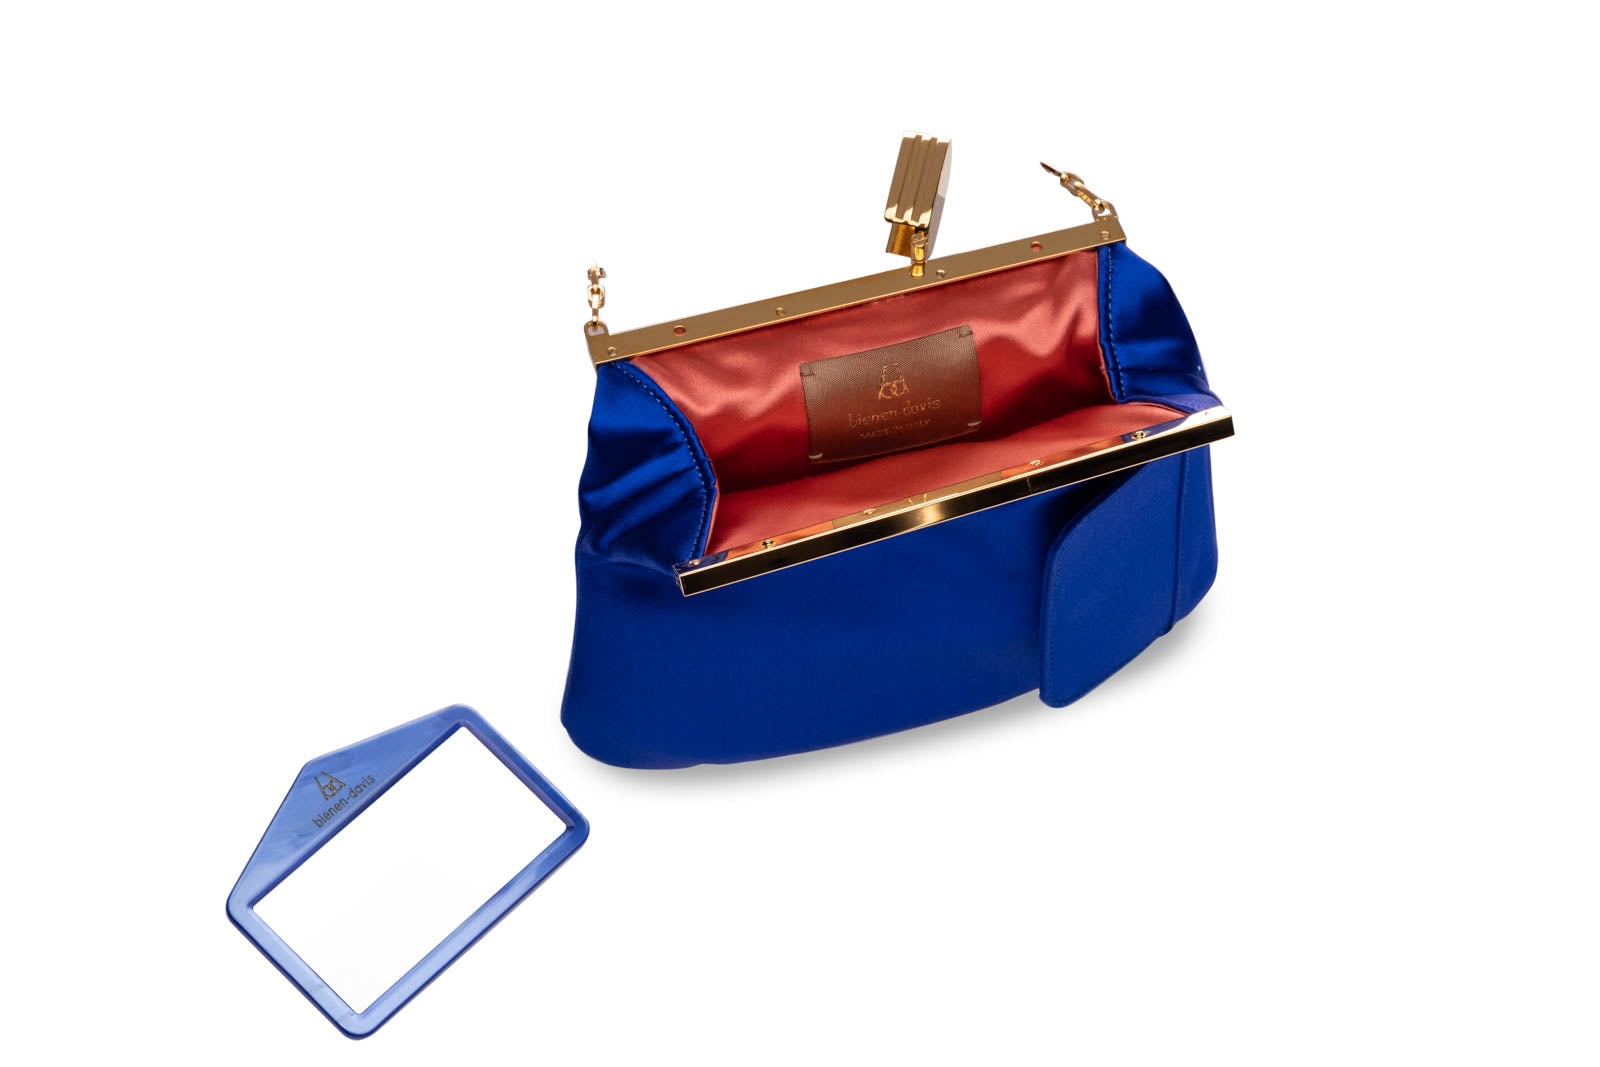 4 AM Bag in Cobalt Silk Satin with 24k Gold Dipped Hardware